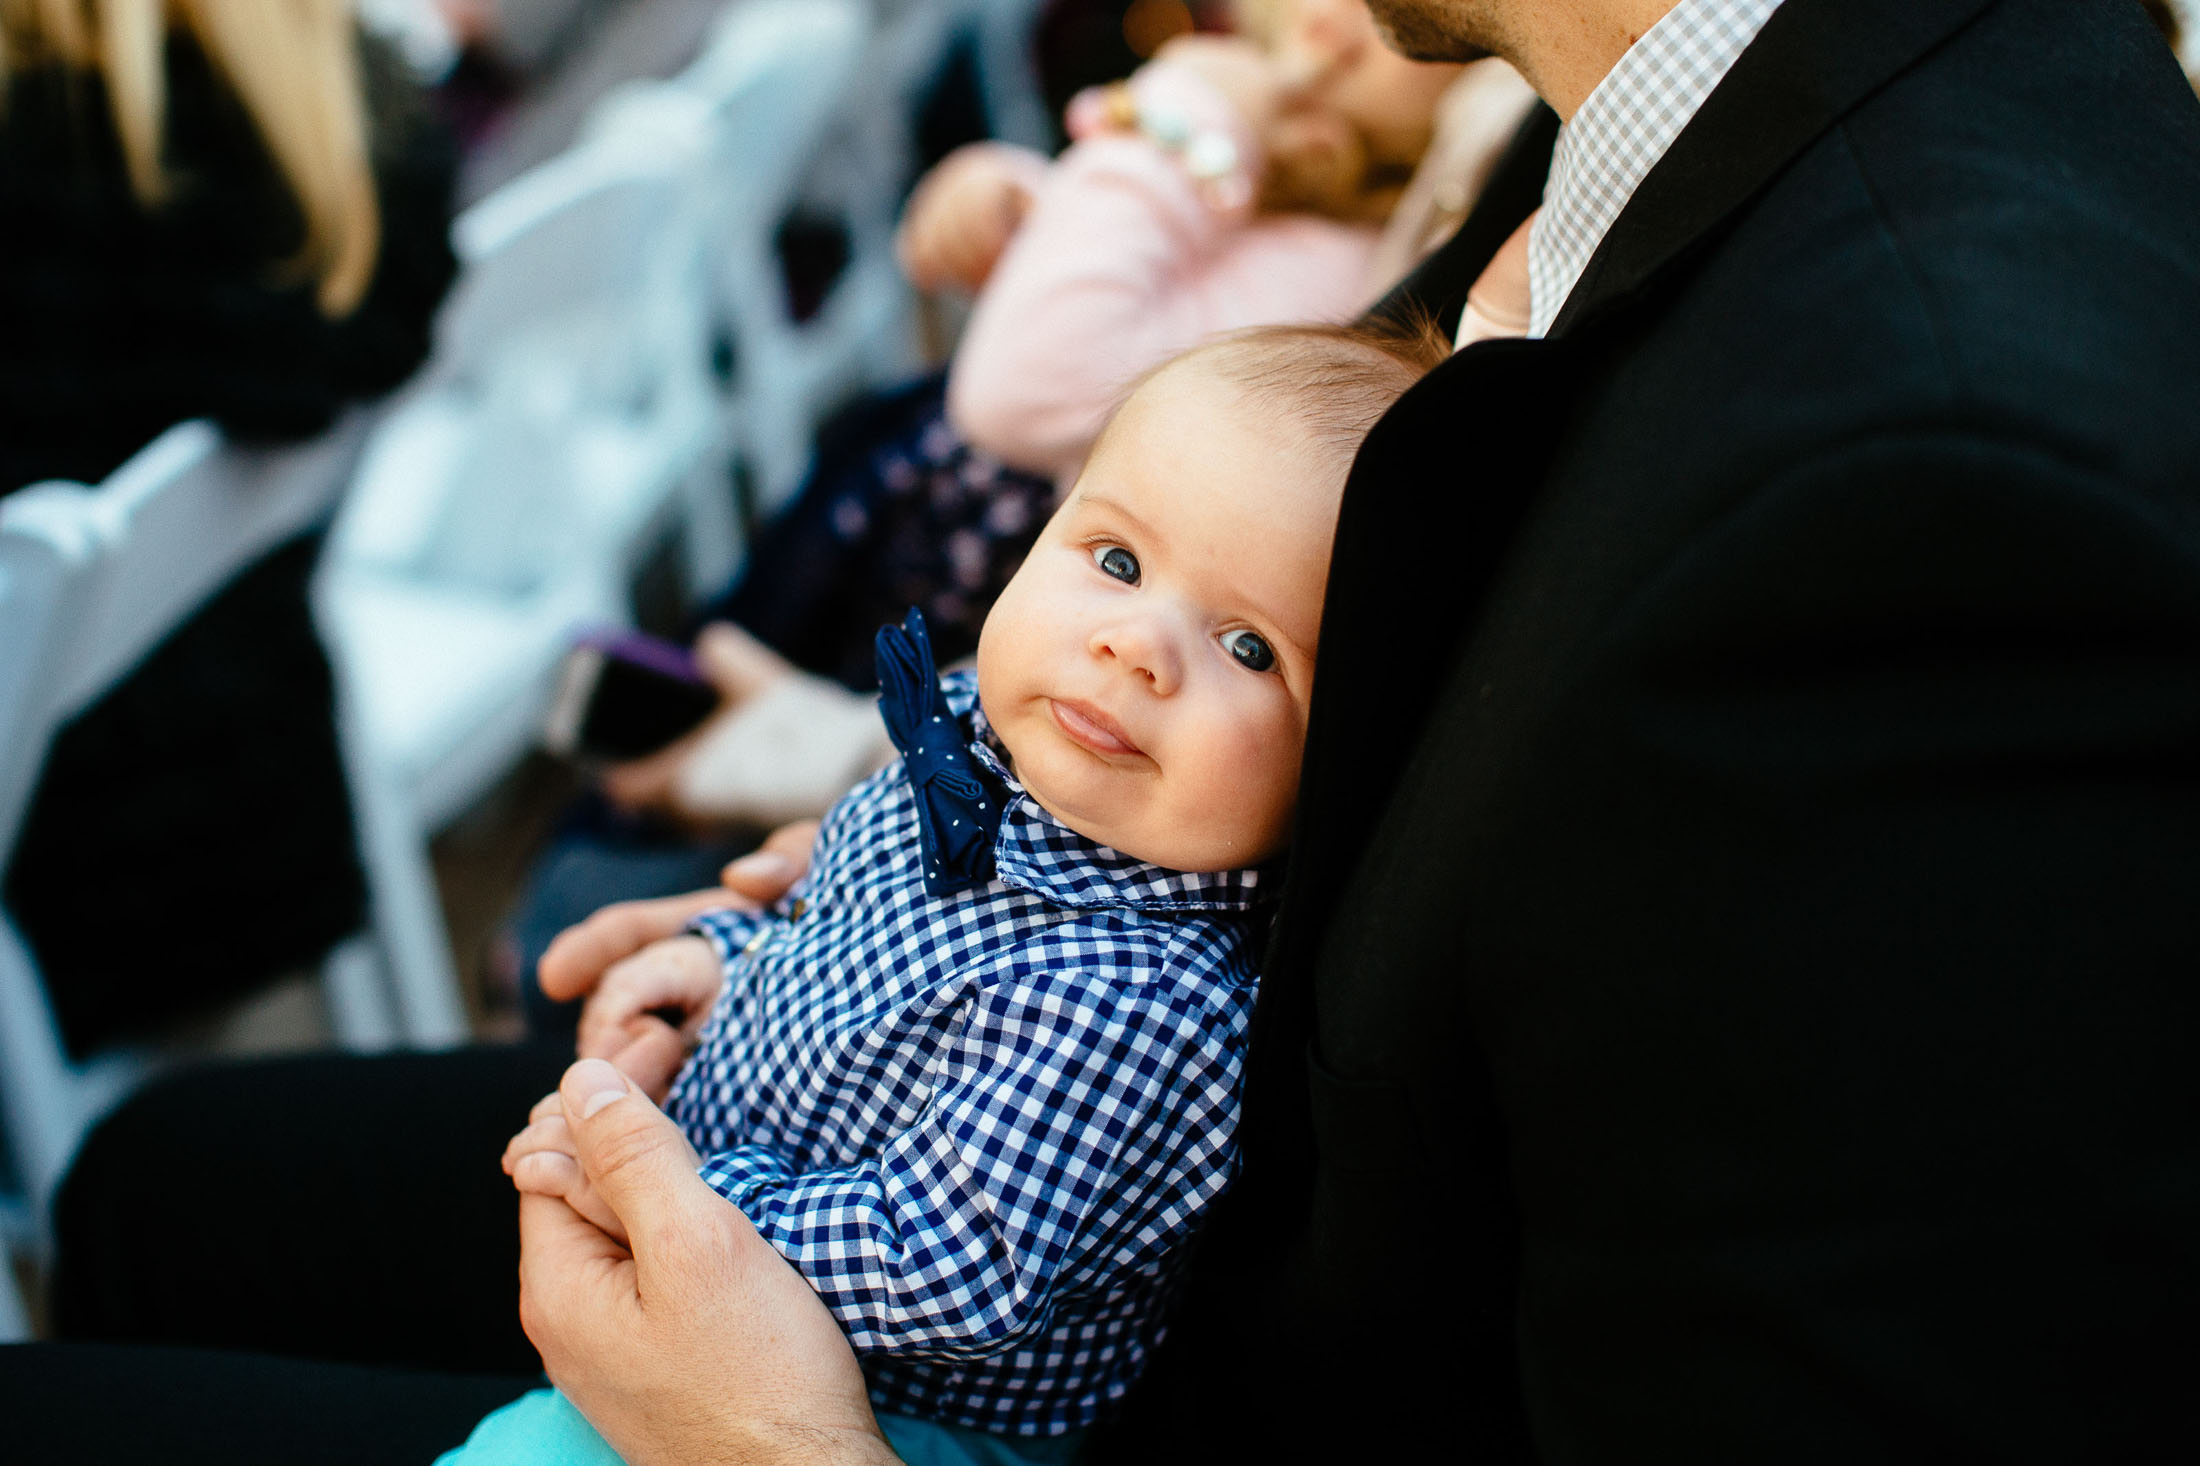 Portrait of baby sitting in a lapr during wedding ceremony.